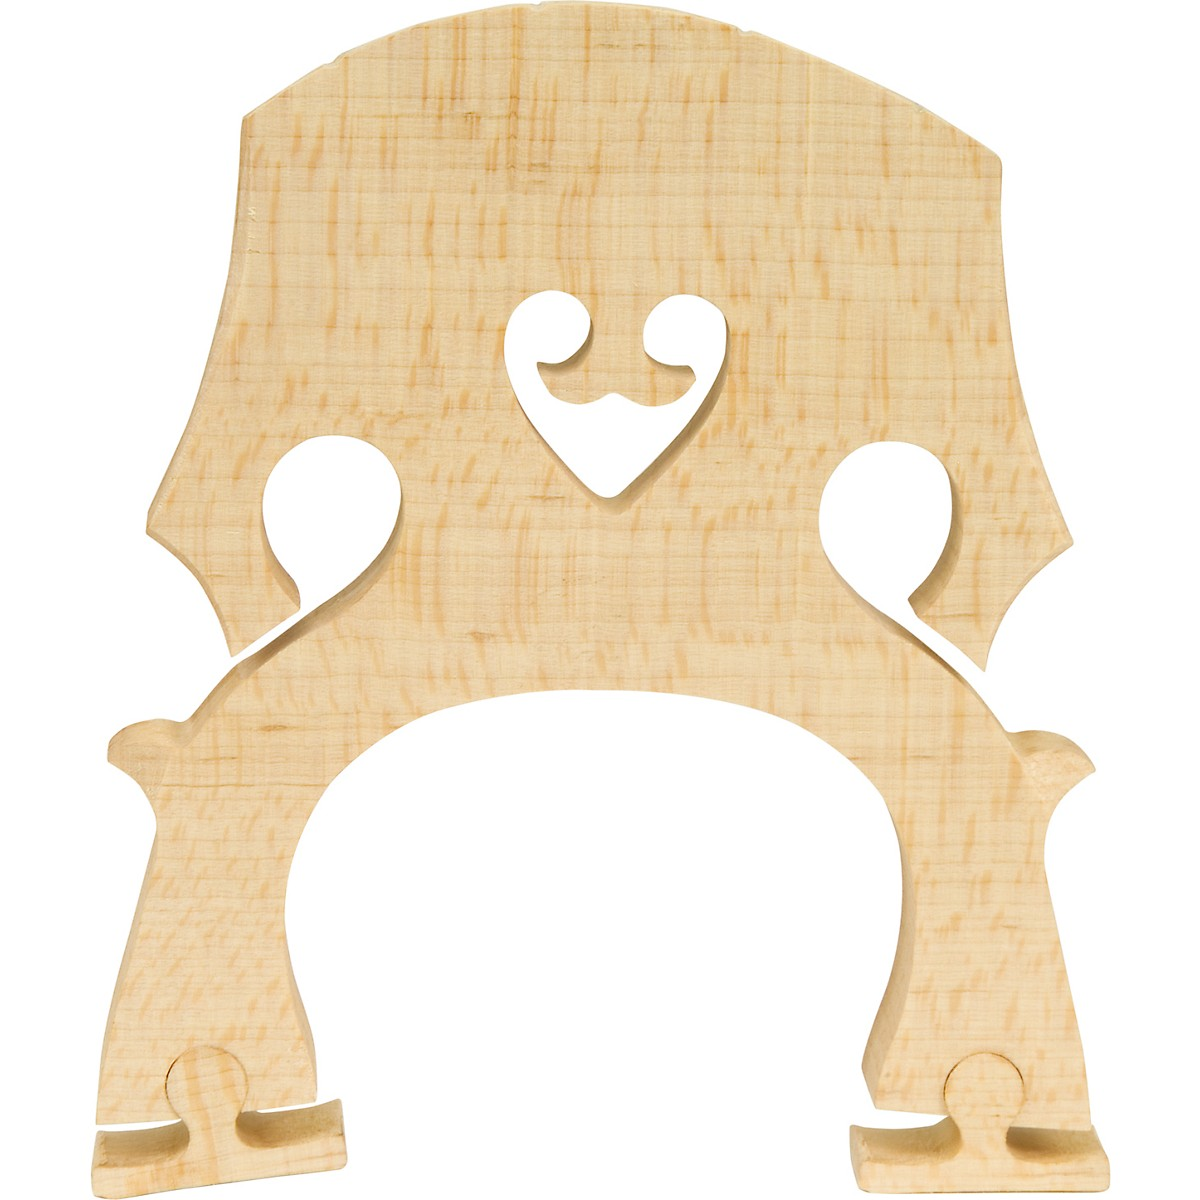 The String Centre Adjustable Cello Bridges